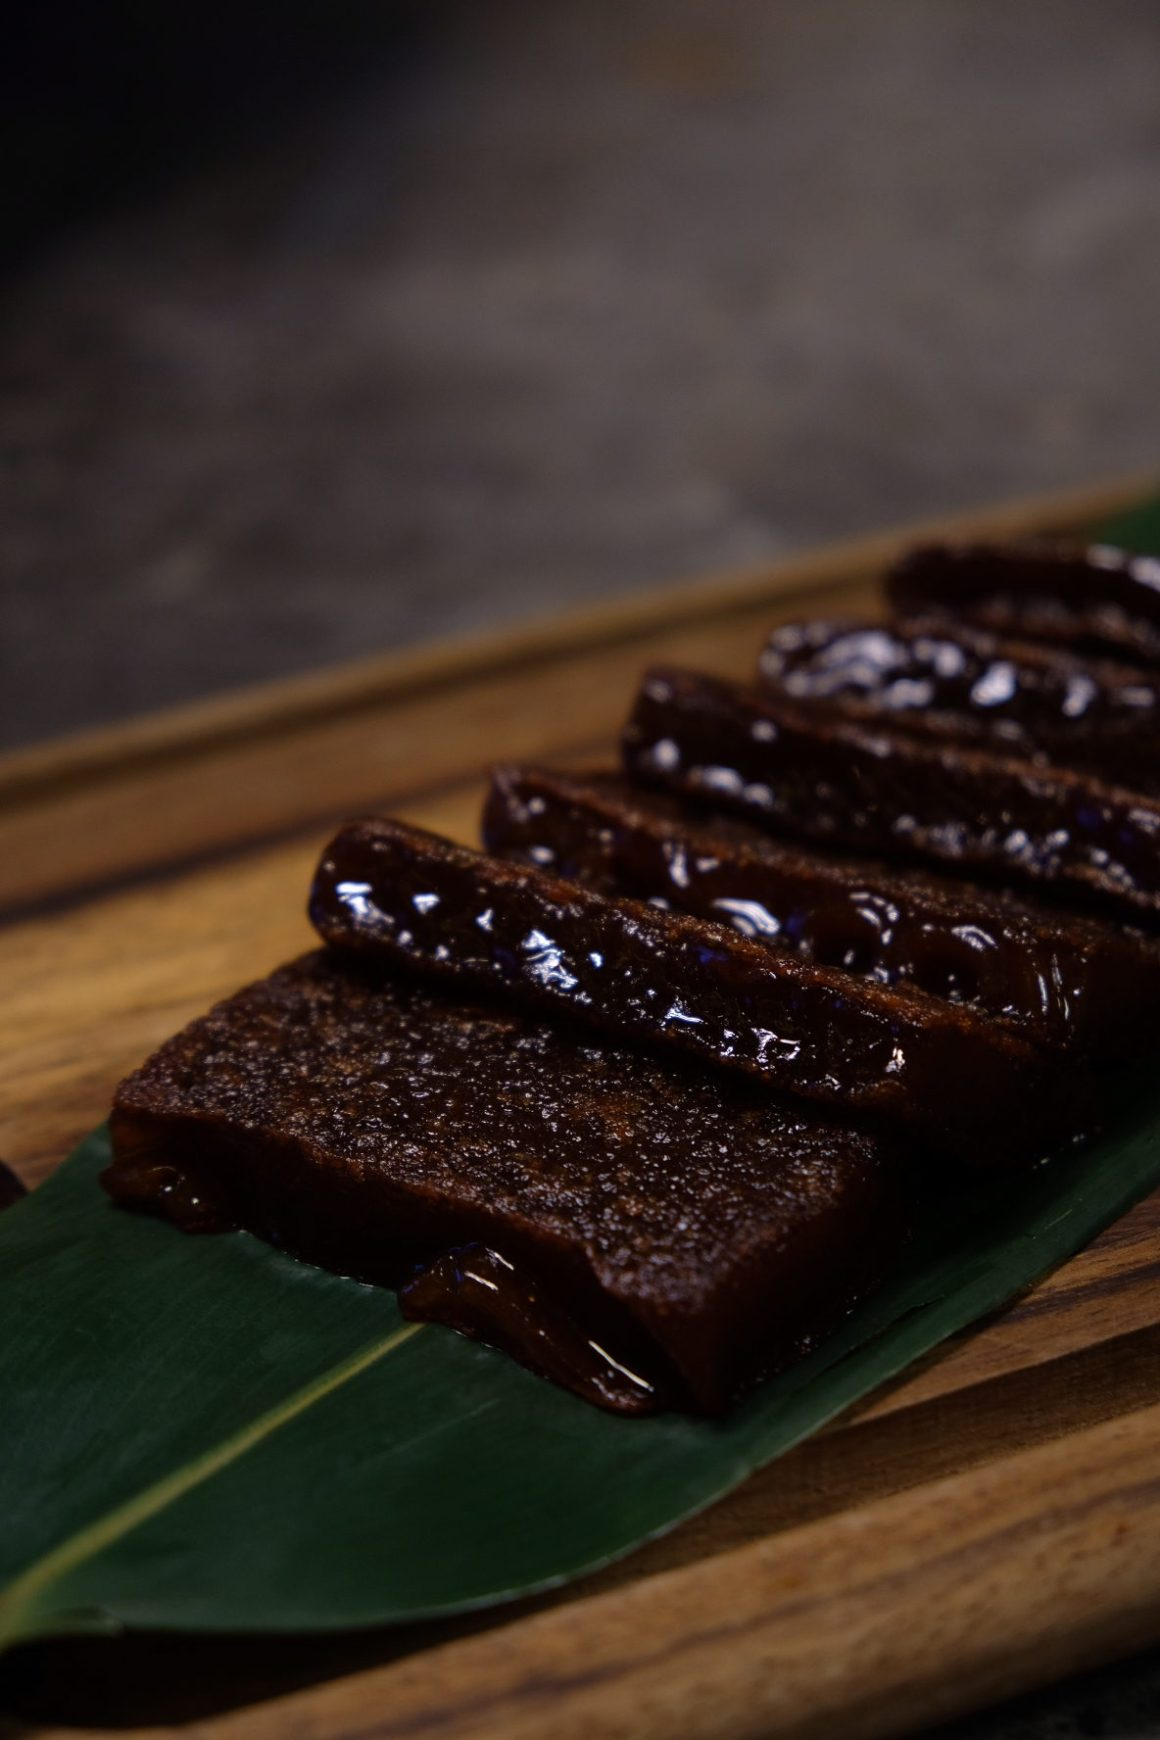 Best restaurants For Your Chinese New Year 2019 Reunion Dinner In Singapore - Blue Lotus, Red Date Nian Gao